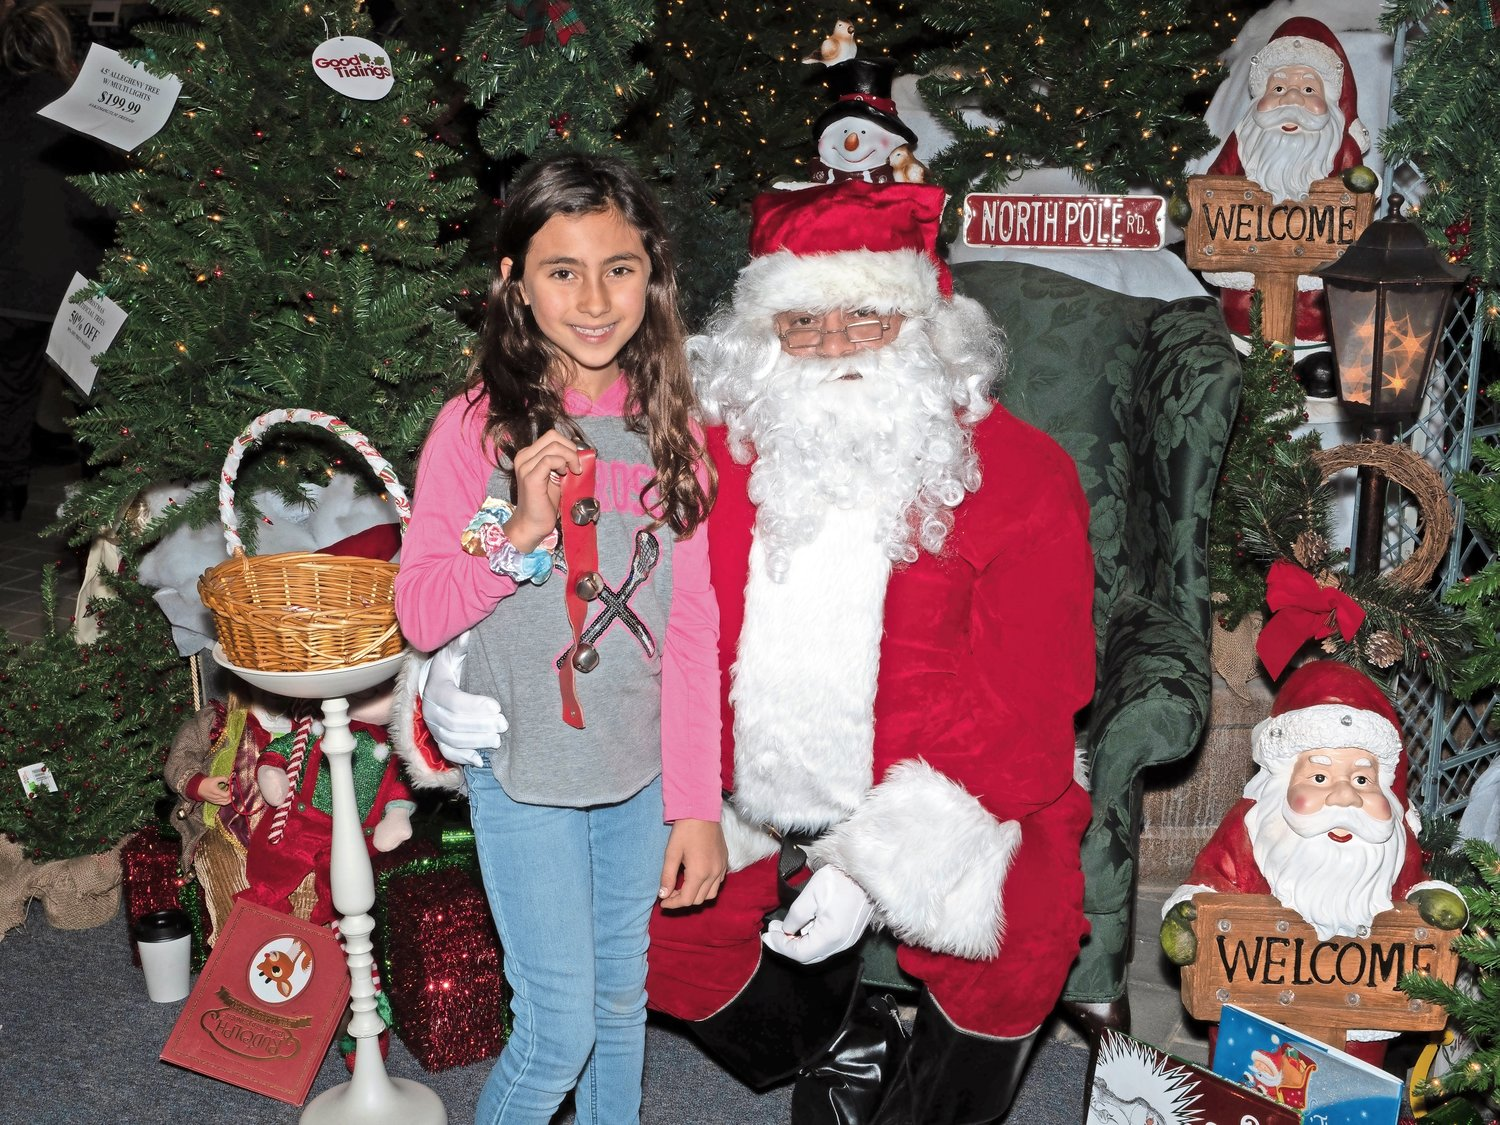 Emma Essig, 8, told Santa Claus what she wanted for Christmas at Garden World's tree lighting on Dec. 1.